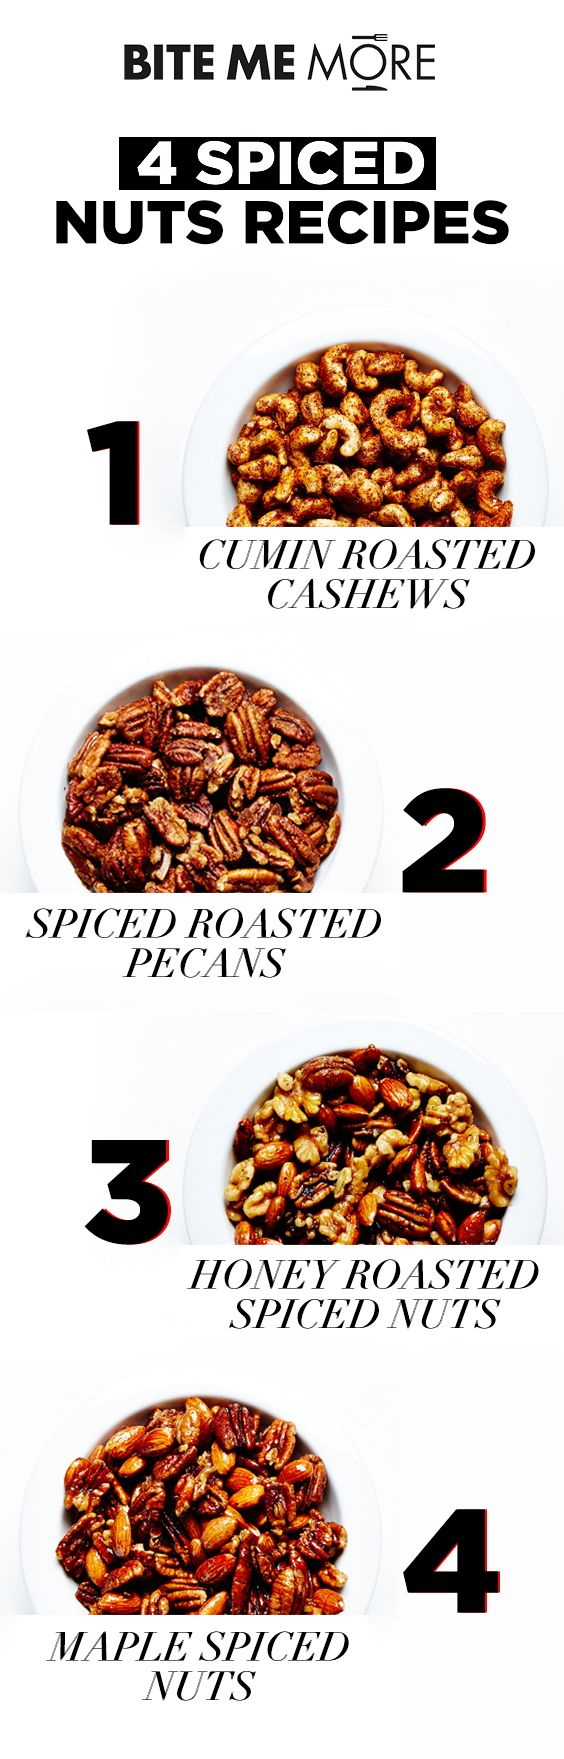 These 4 recipes for spiced nuts are the perfect cocktail companion! #BiteMeMore…